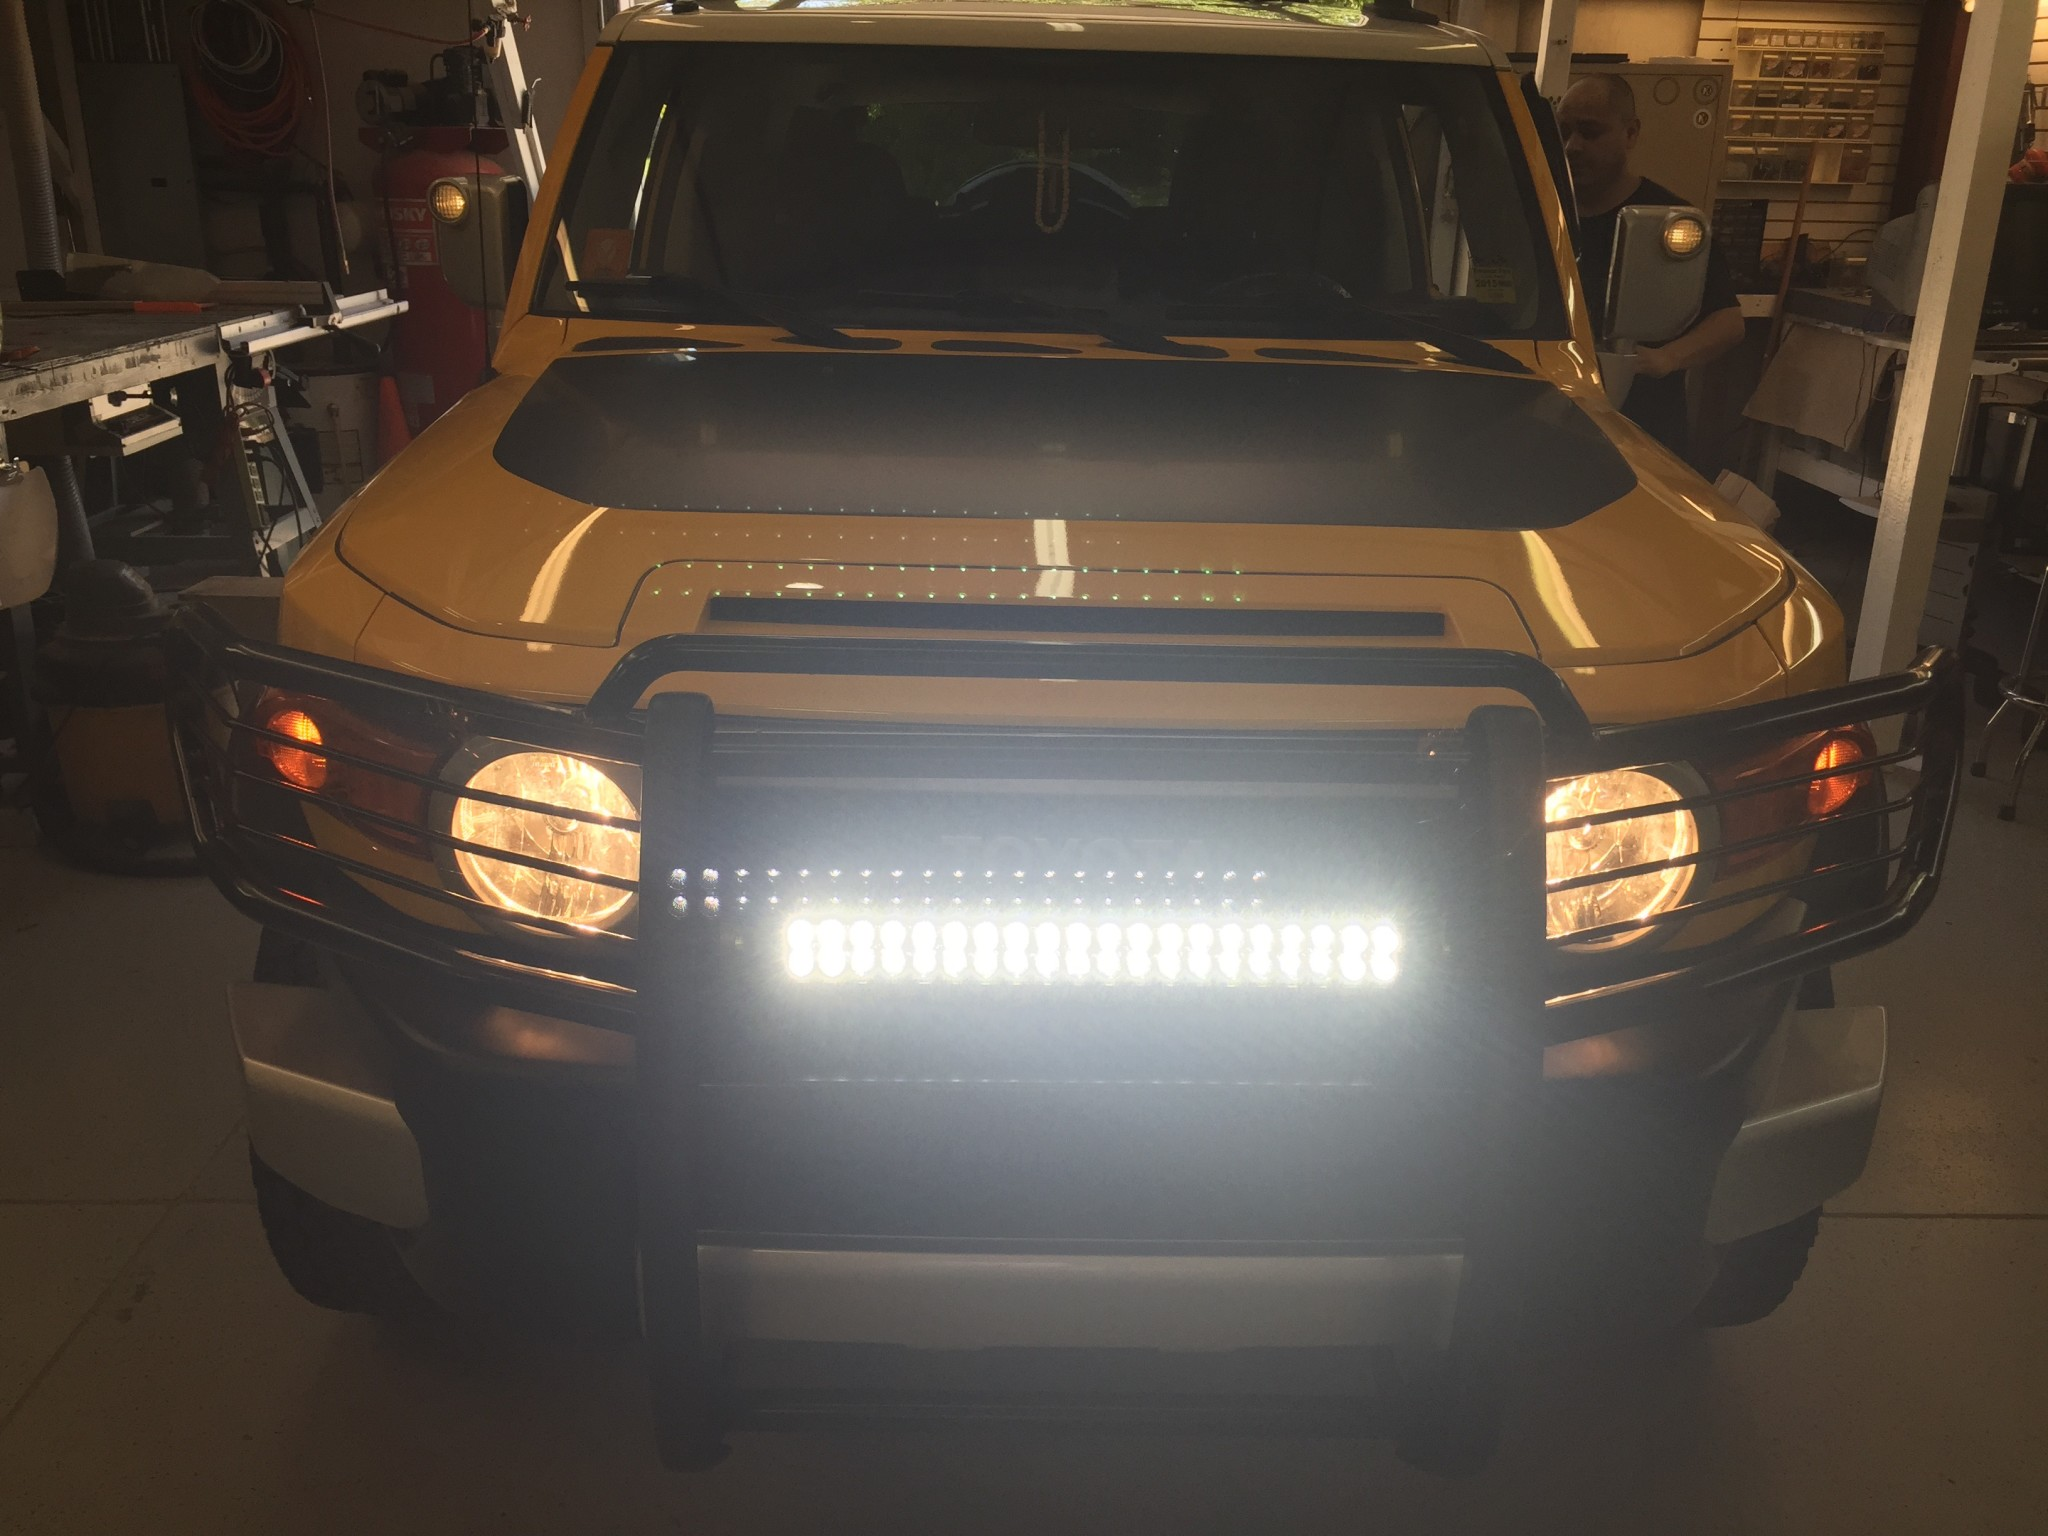 2010 Toyota Fj Cruiser  Smartphone Friendly Radio And Let There Be Light